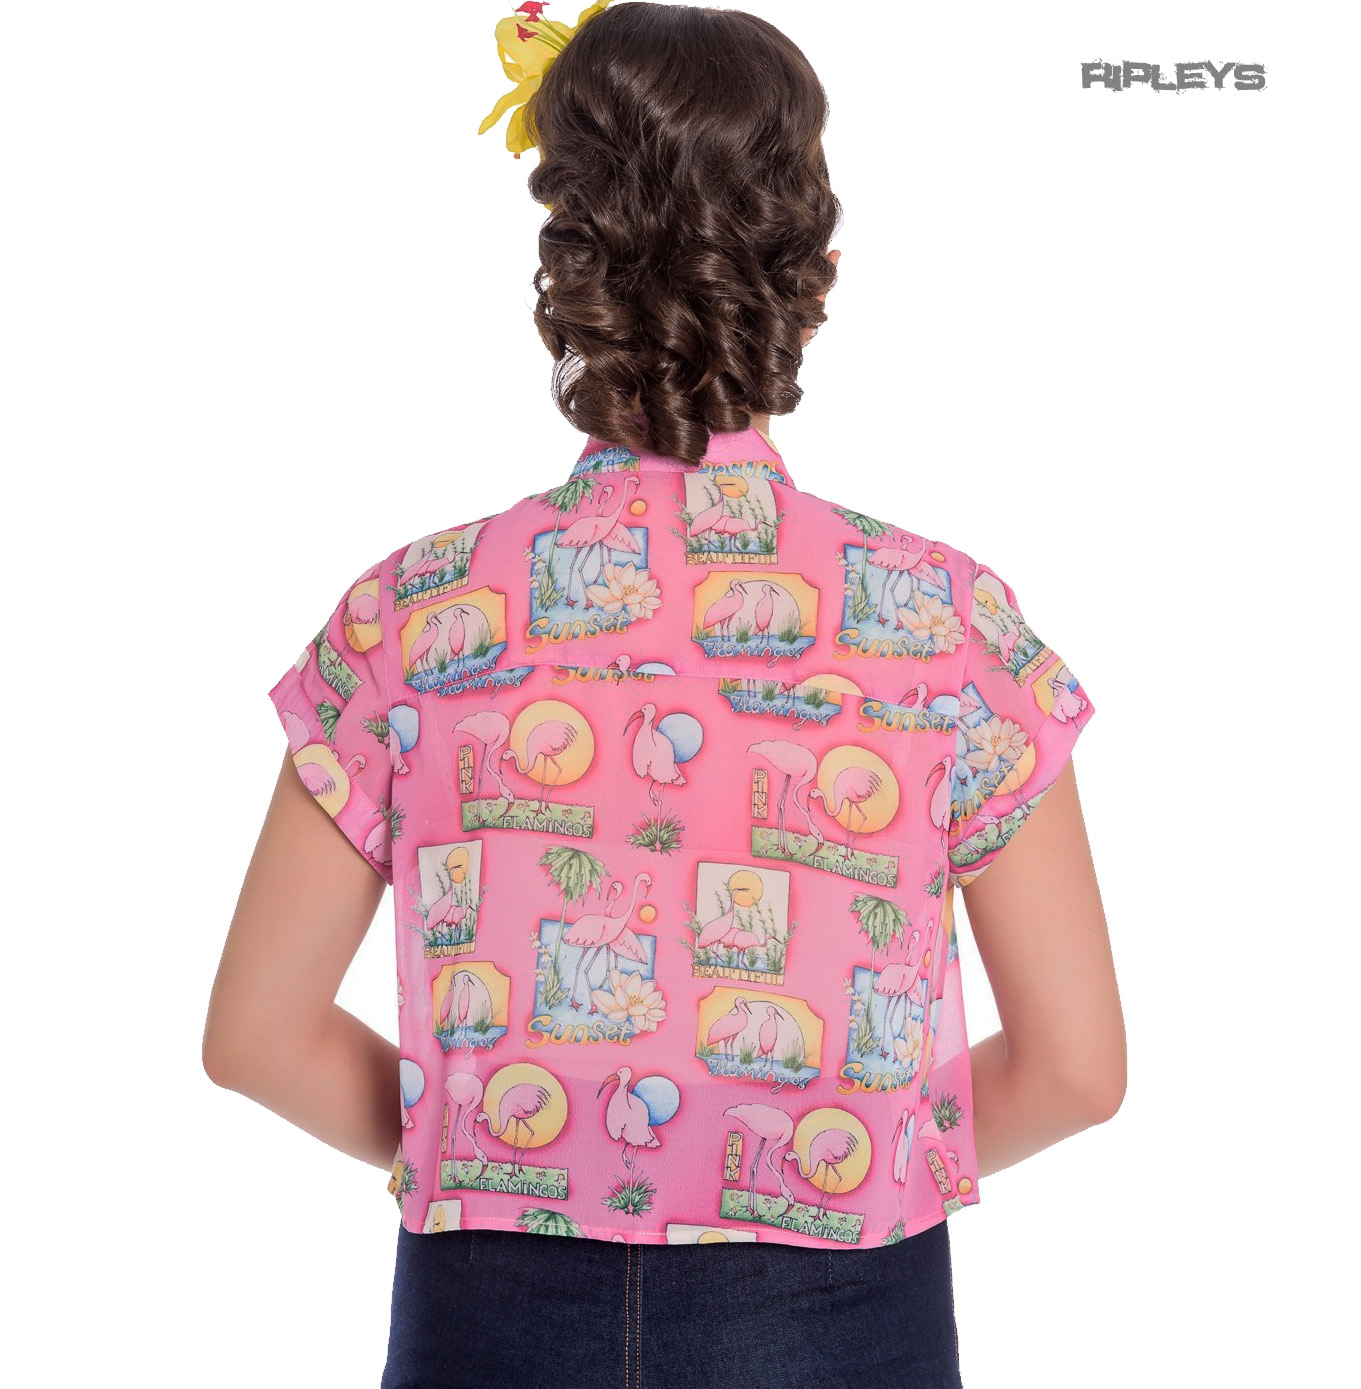 thumbnail 31 - Hell Bunny 50s Retro Top Pink Flamingo MAXINE Cropped Blouse Shirt All Sizes